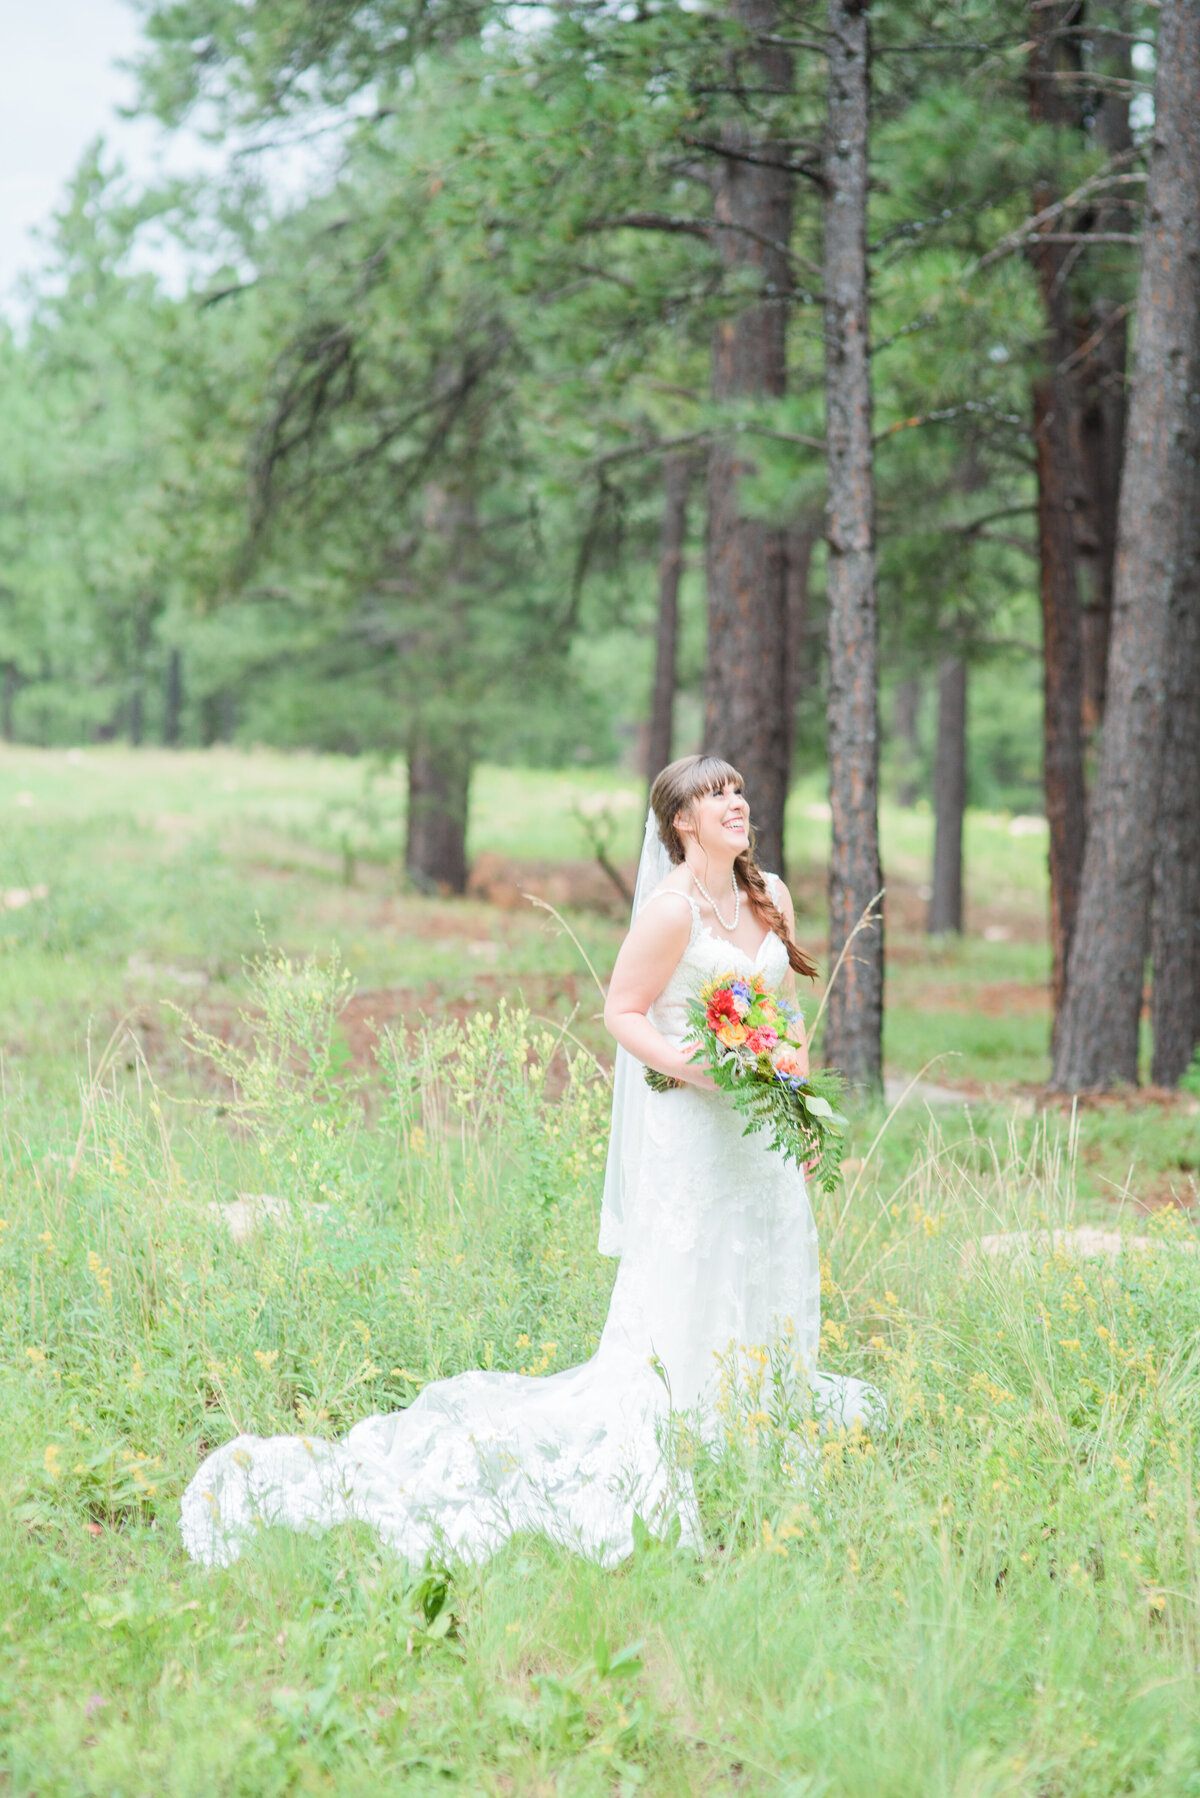 Marquette-LaRee-Payson-AZ-Wedding-Photographer-71